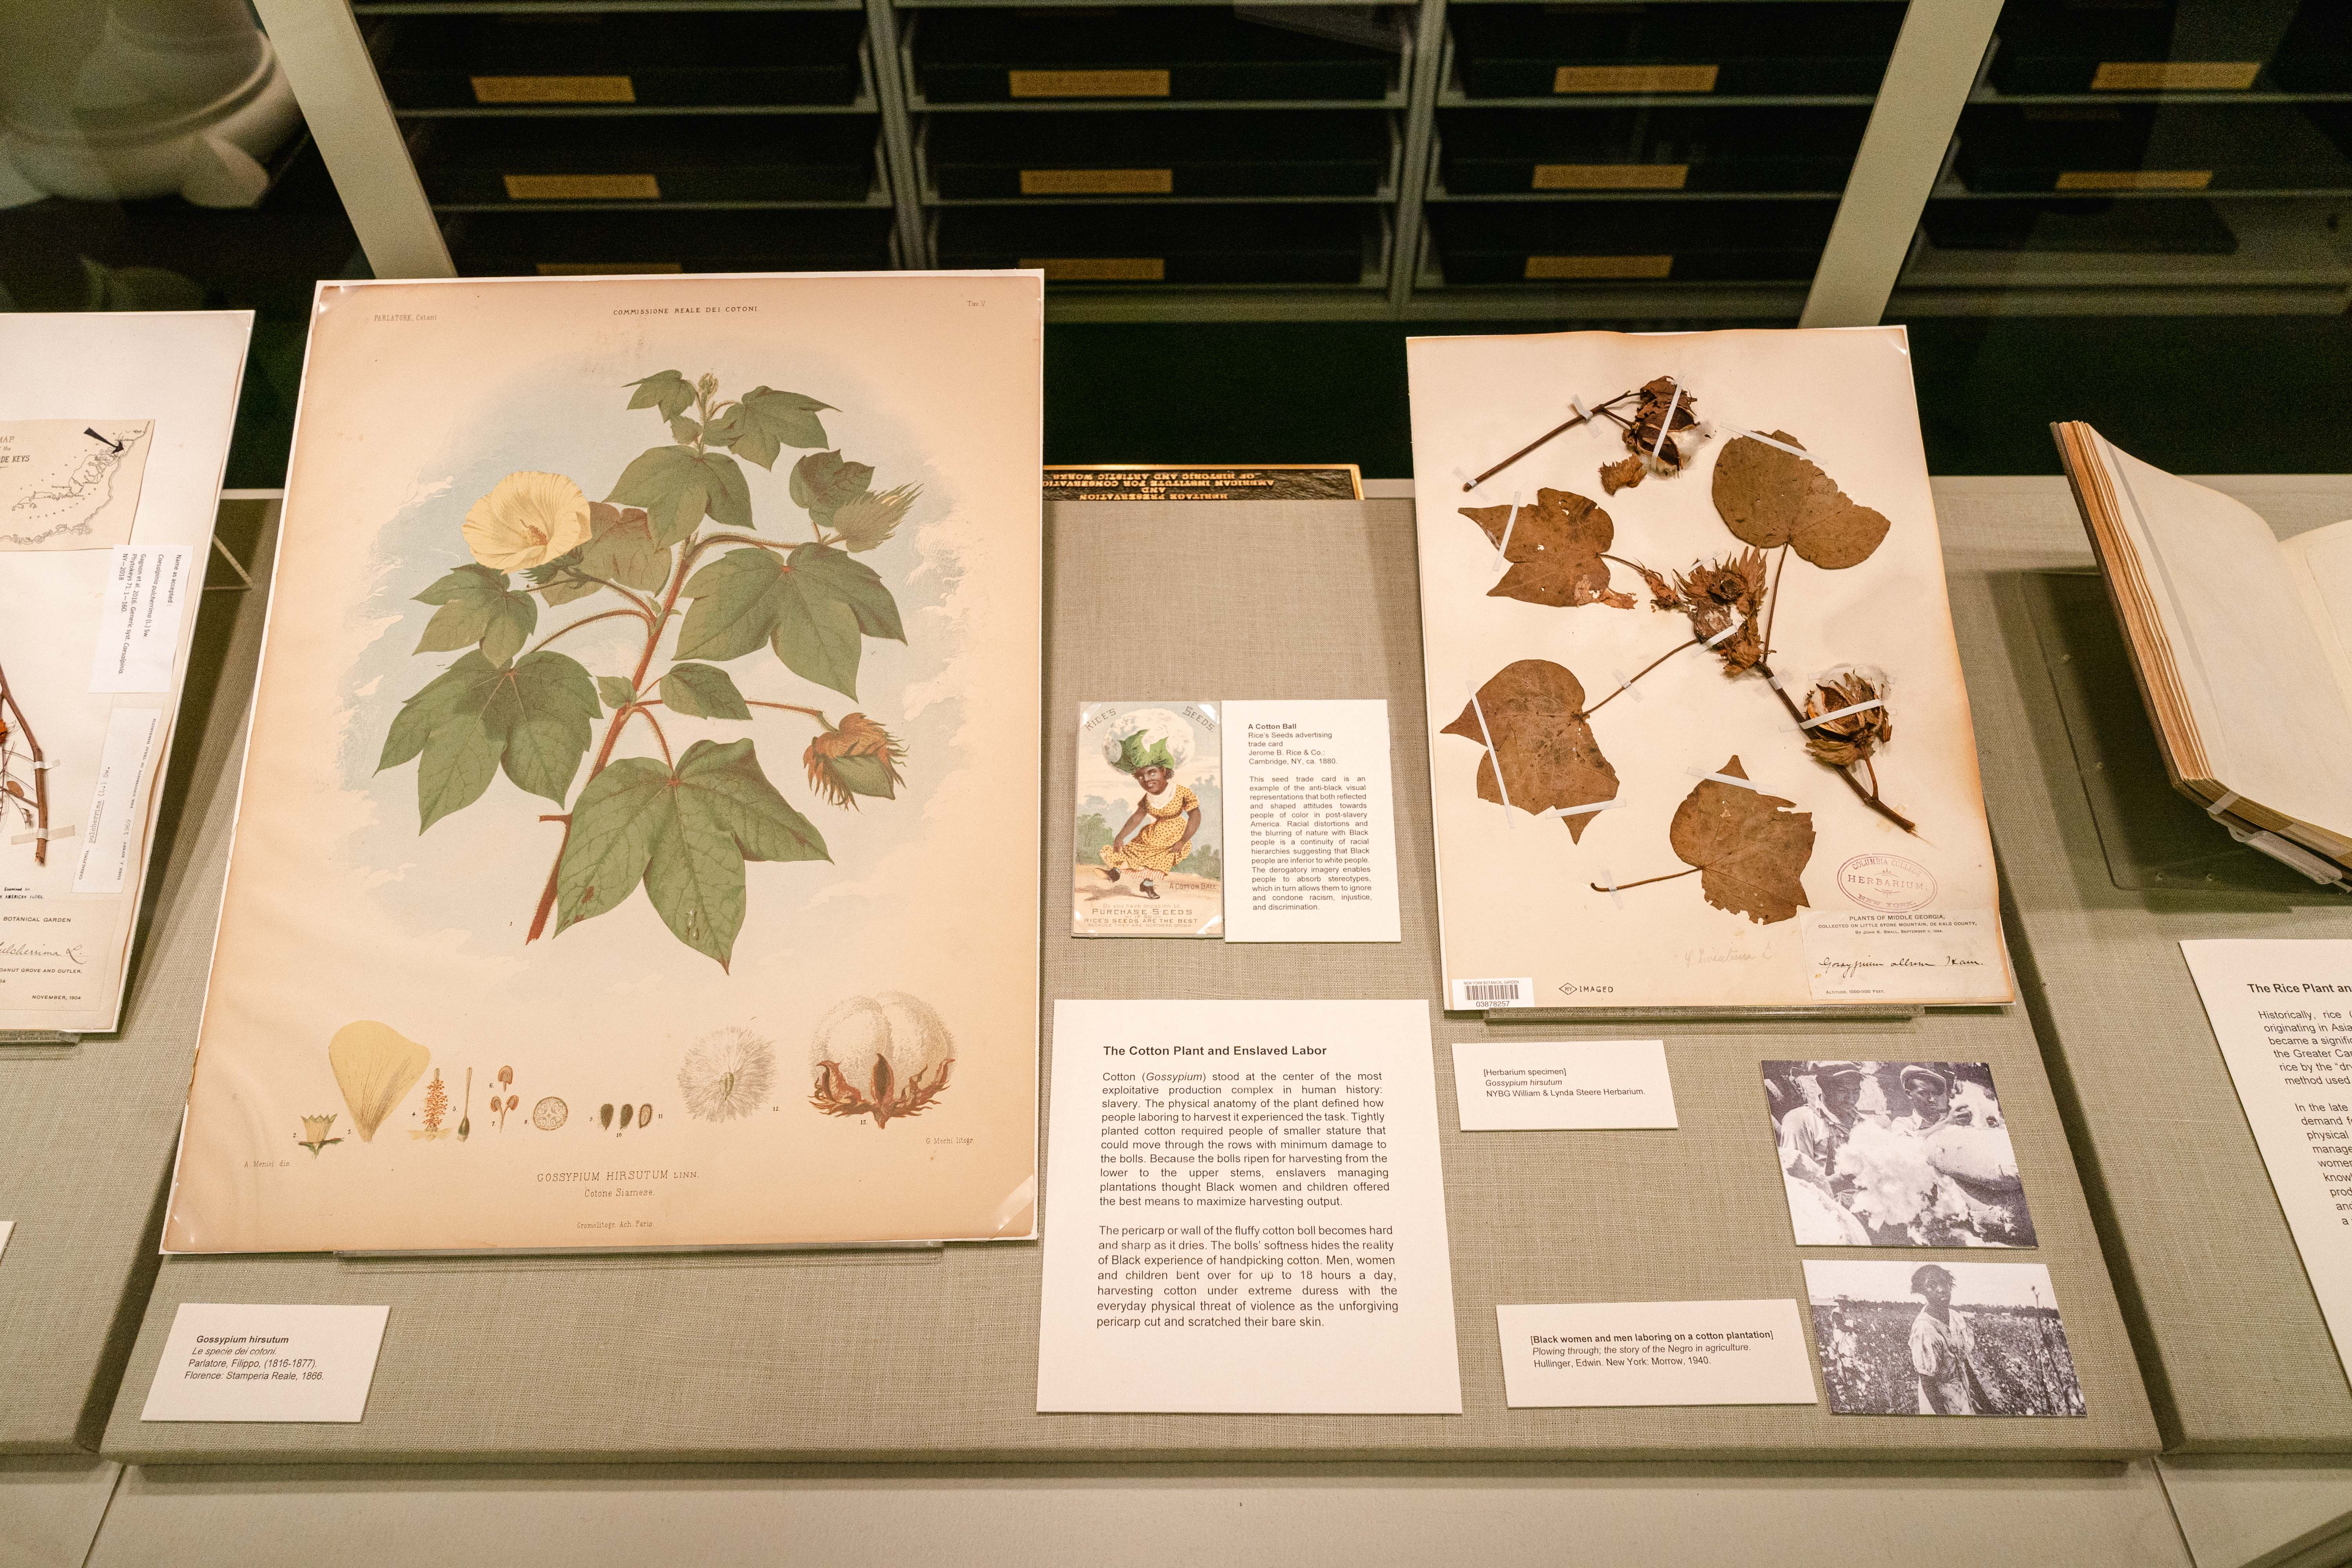 Rare Book Room: The Cotton Plant and Enslaved Labor